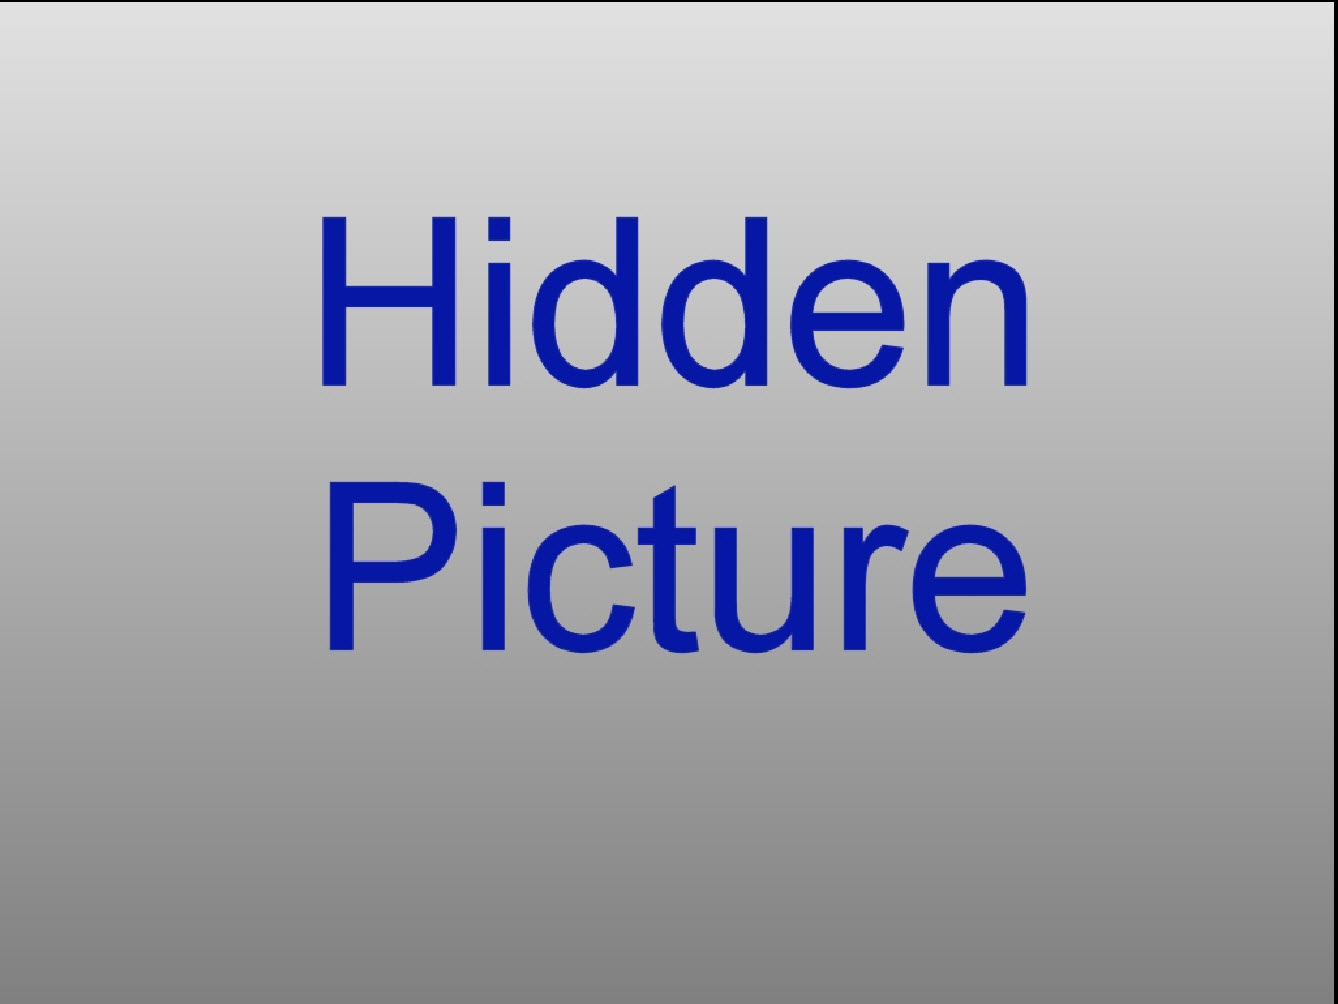 Selected Hidden Picture in Main Screen